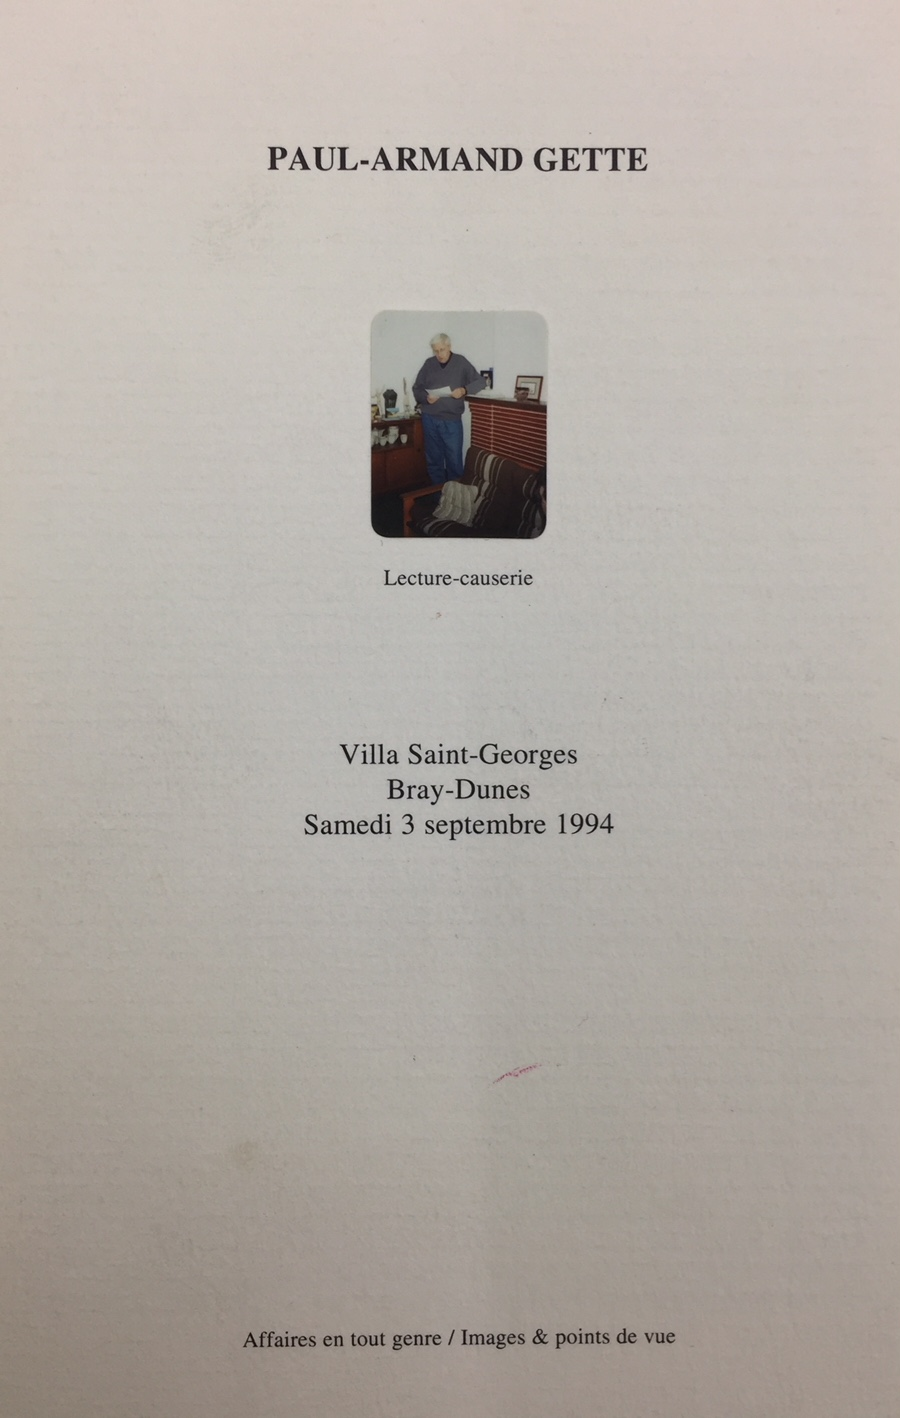 Lecture-causerie